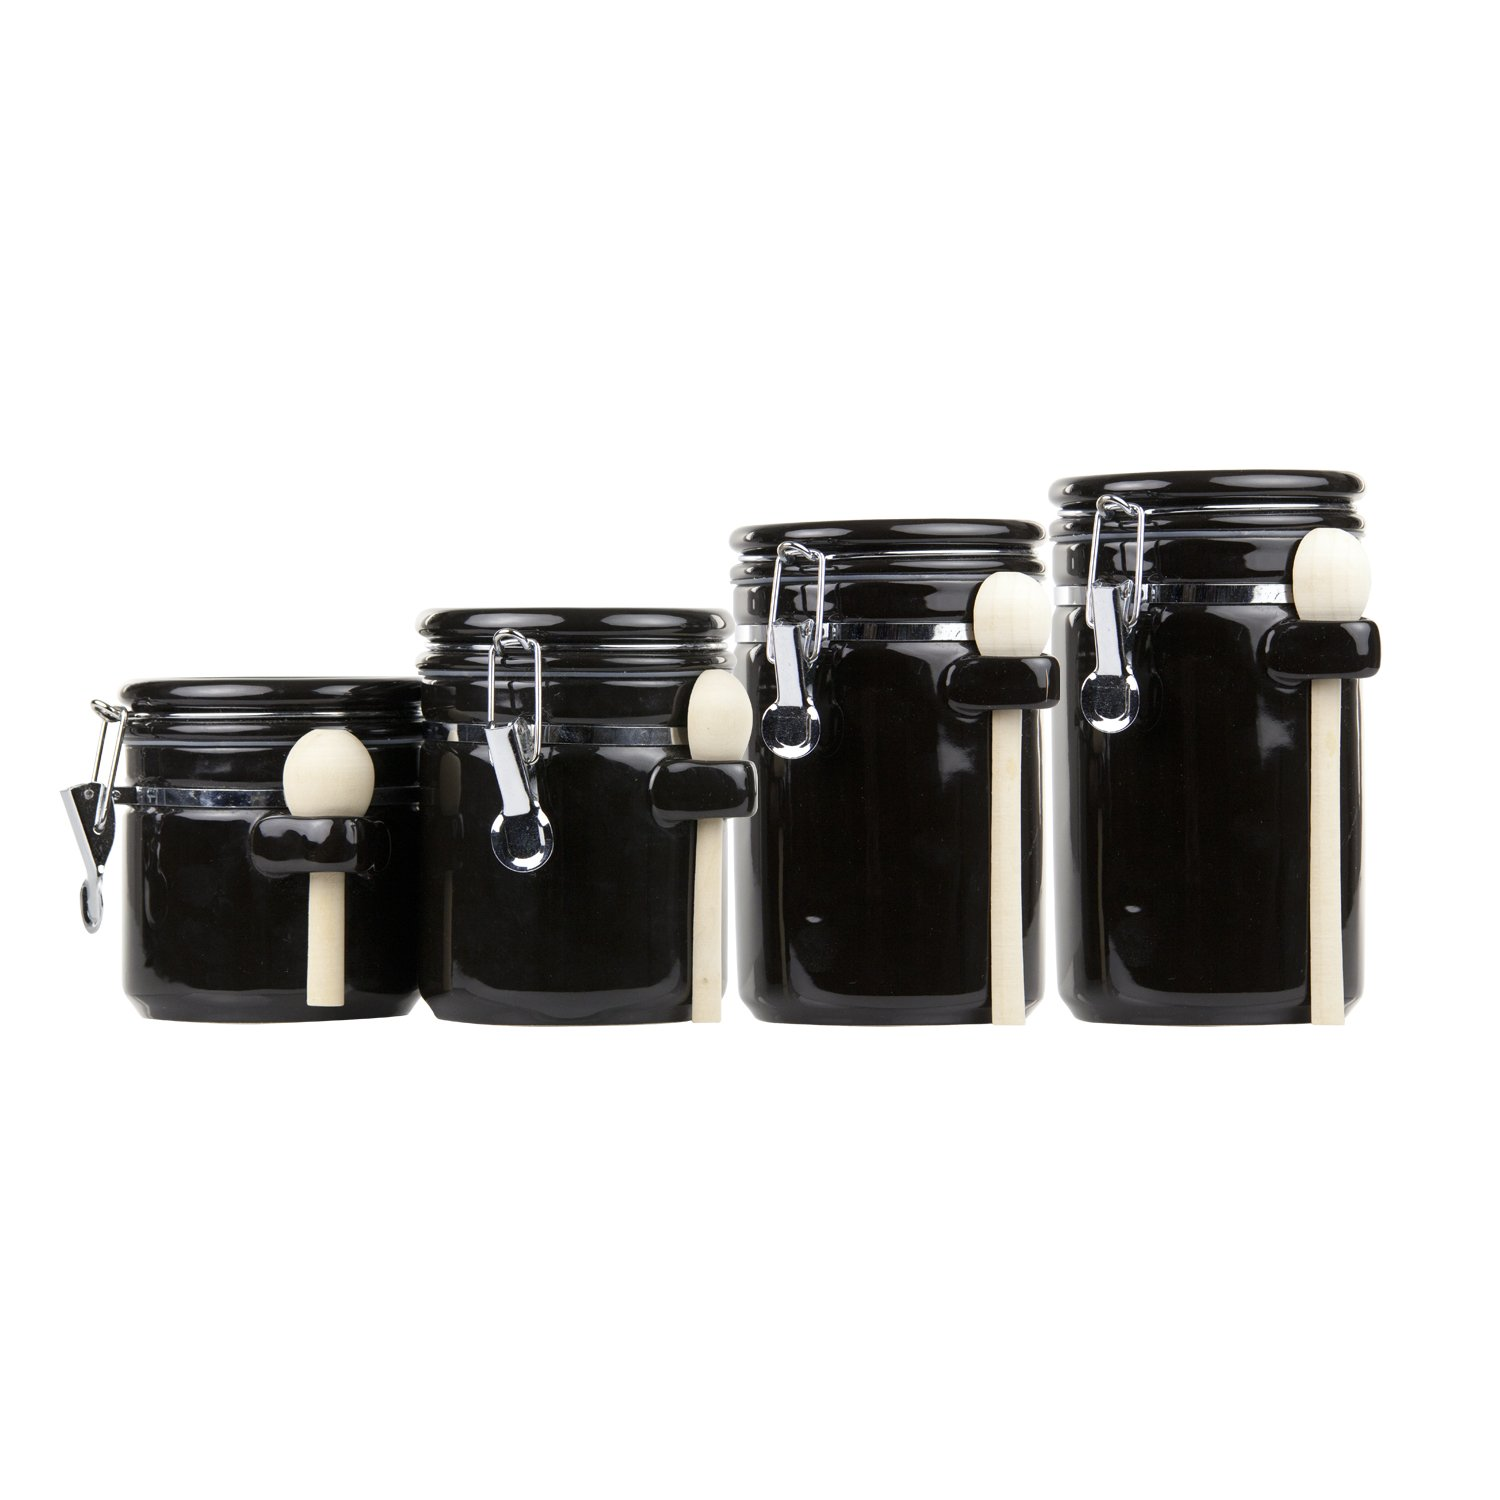 Home Basics CS44153 4 Piece Ceramic Canister Set with Spoon, Black